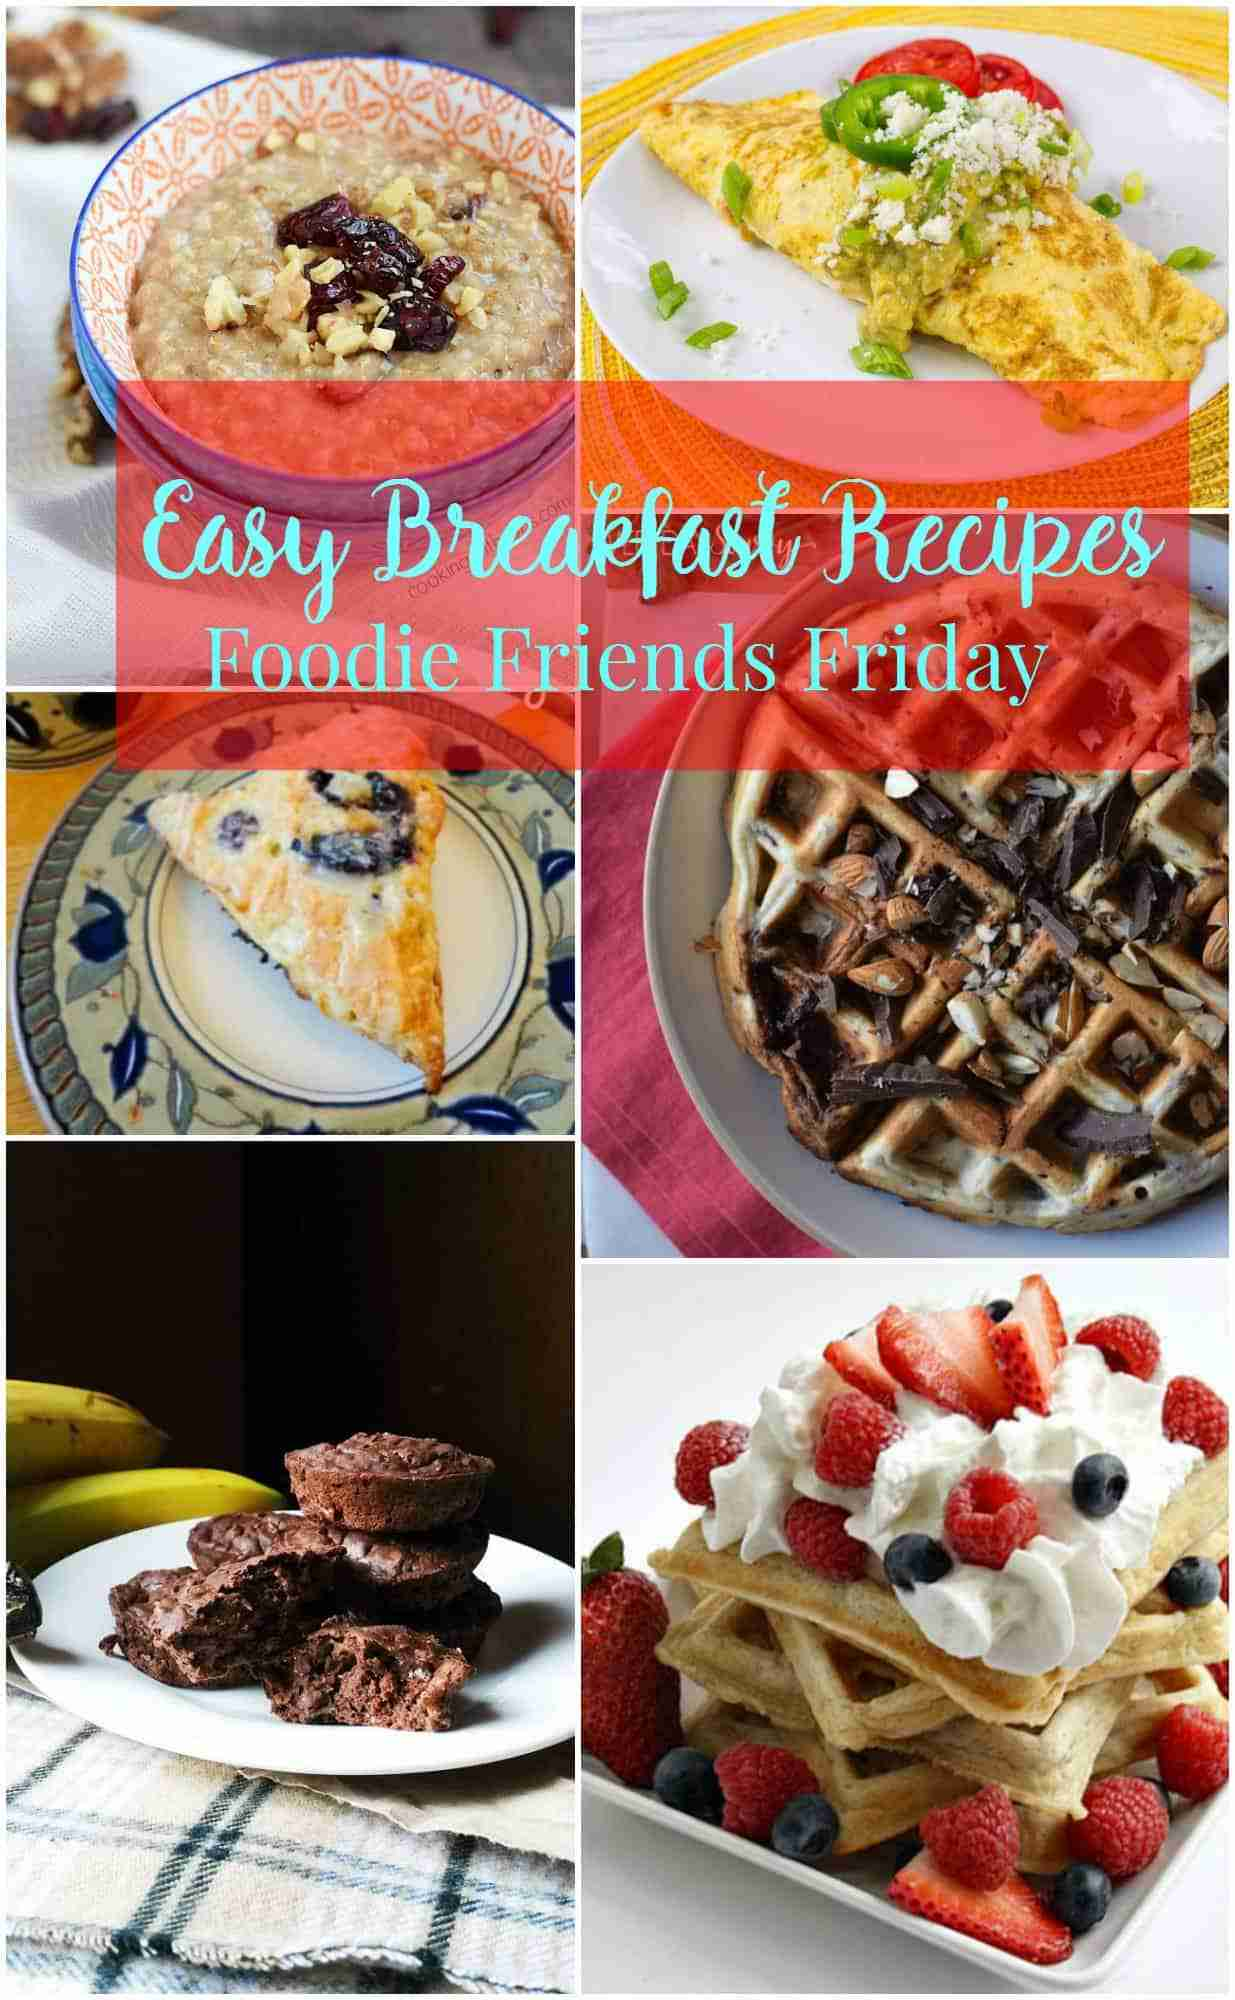 Easy Breakfast Recipes from Foodie Friends Friday